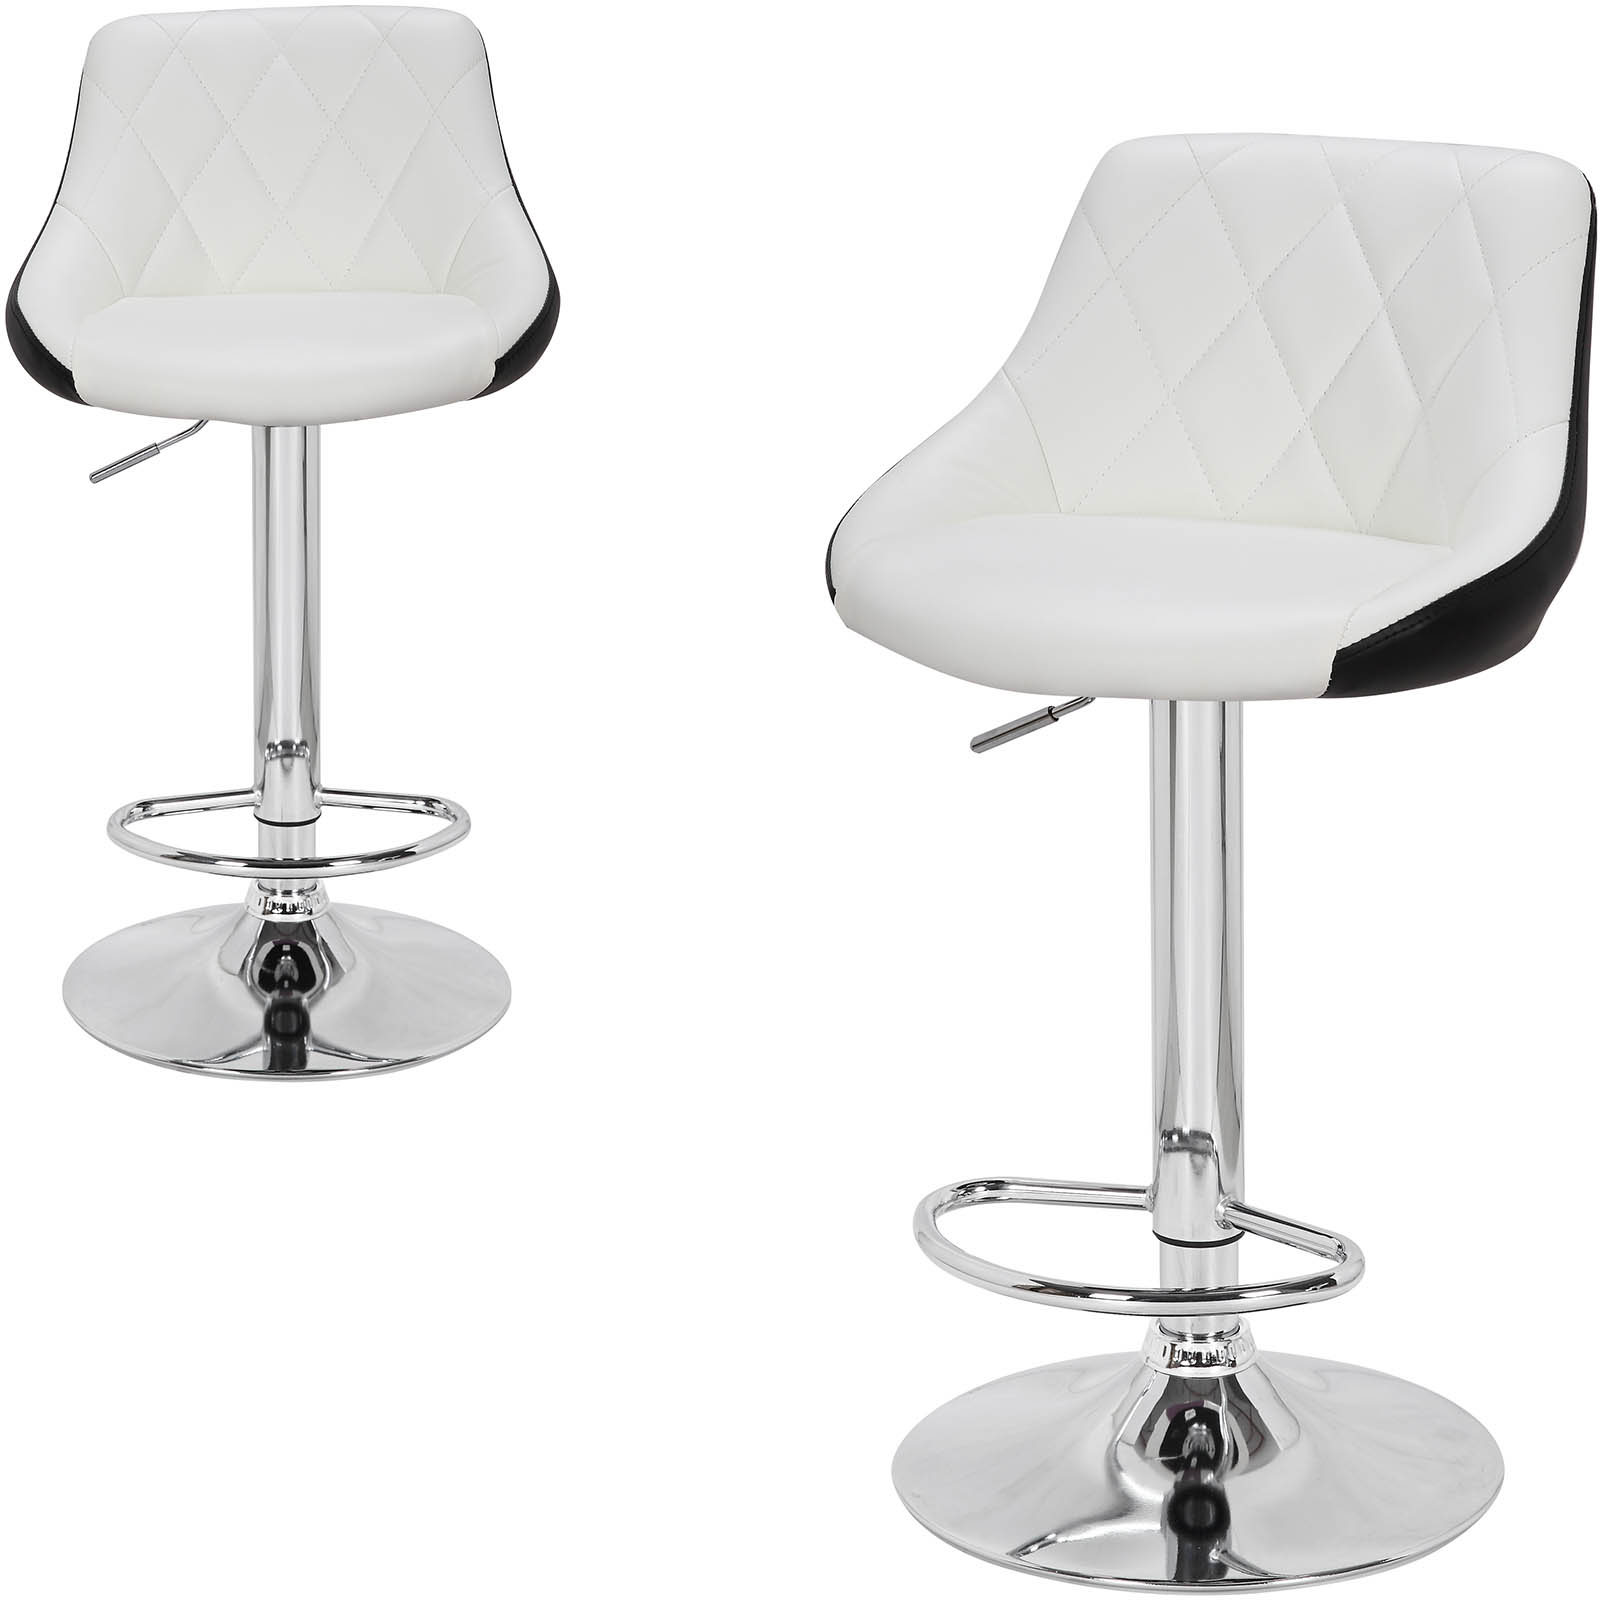 1PC Bar Stool with Handle Height Adjustable Rotatable Seat Faux Leather Chrome-Plated Steel Frame Kitchen Chair Bar Furniture